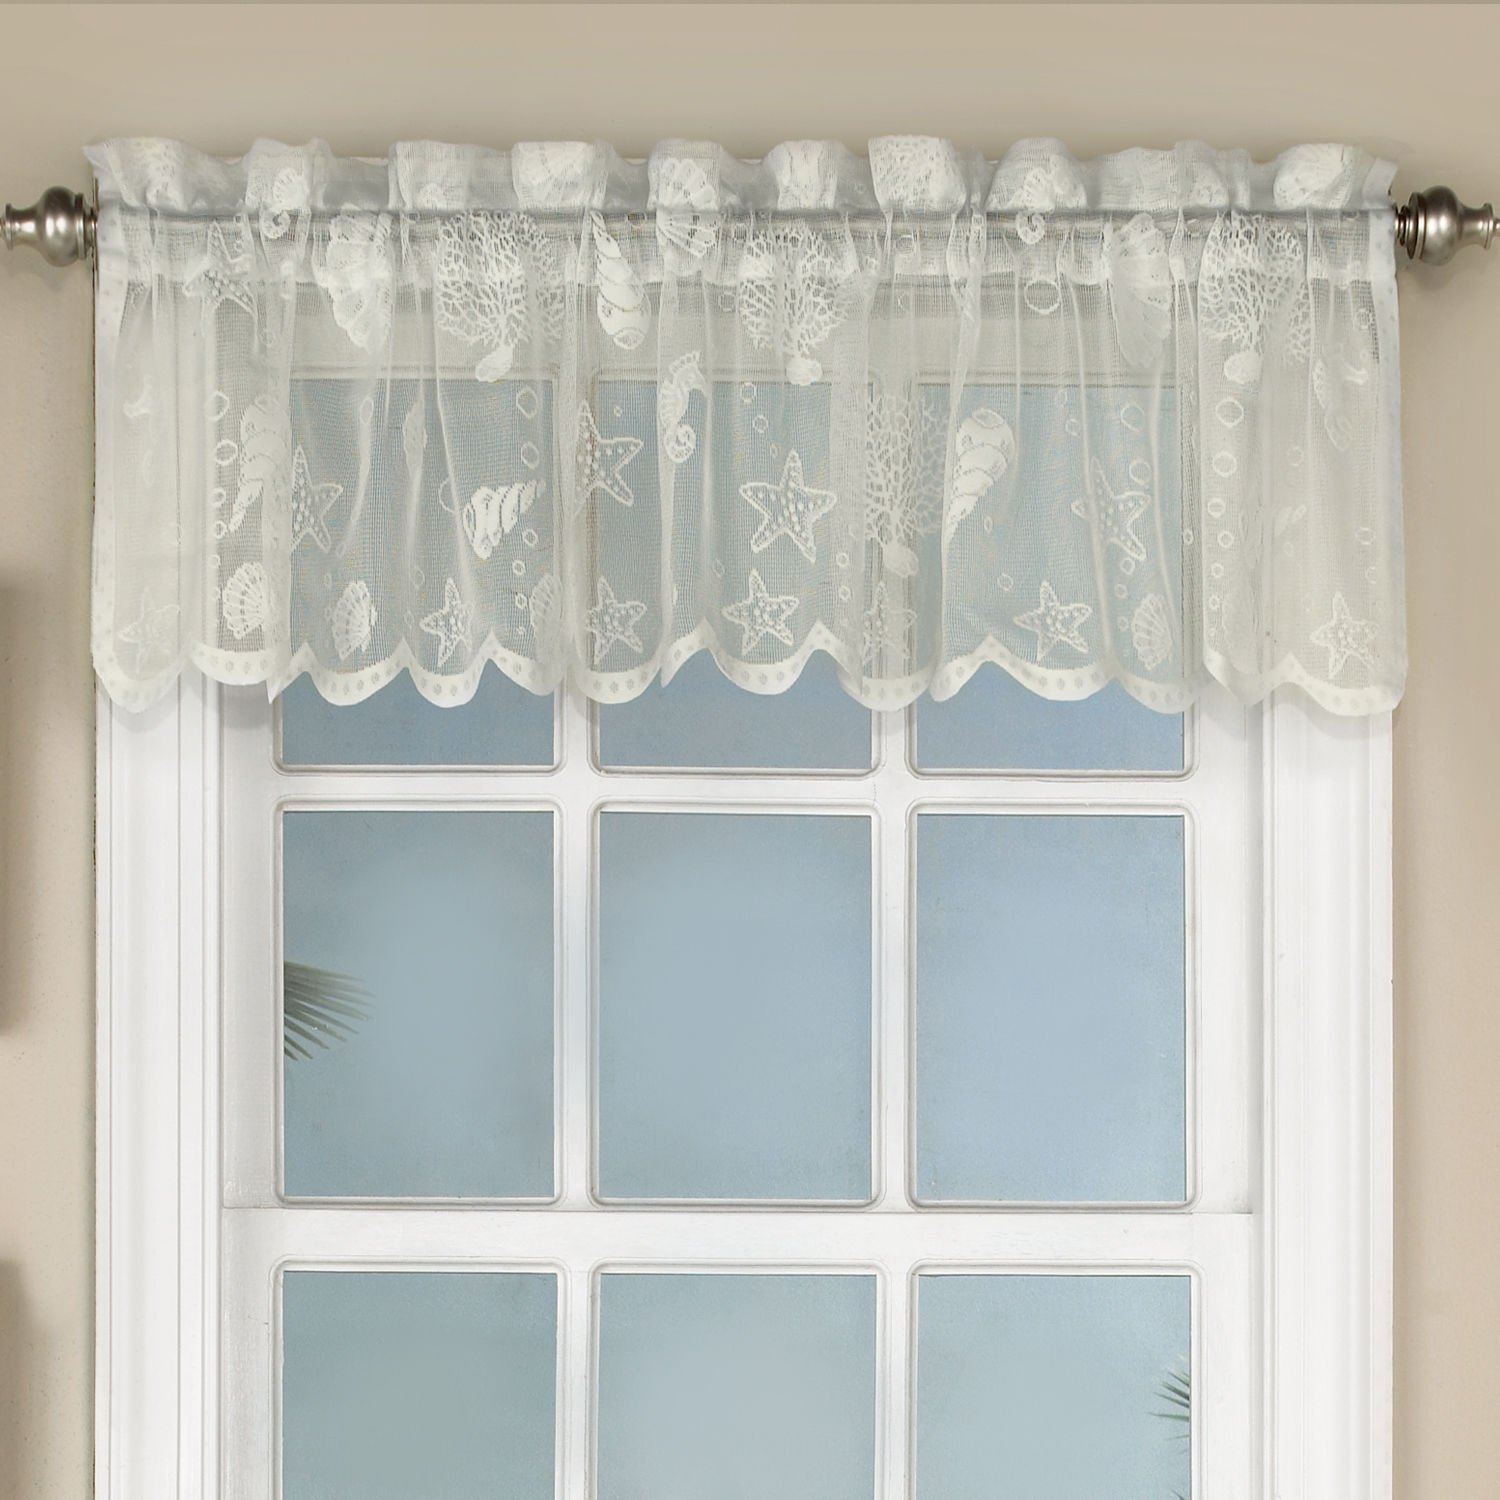 Cheap White Lace Kitchen Curtains, Find White Lace Kitchen Regarding French Vanilla Country Style Curtain Parts With White Daisy Lace Accent (View 16 of 20)